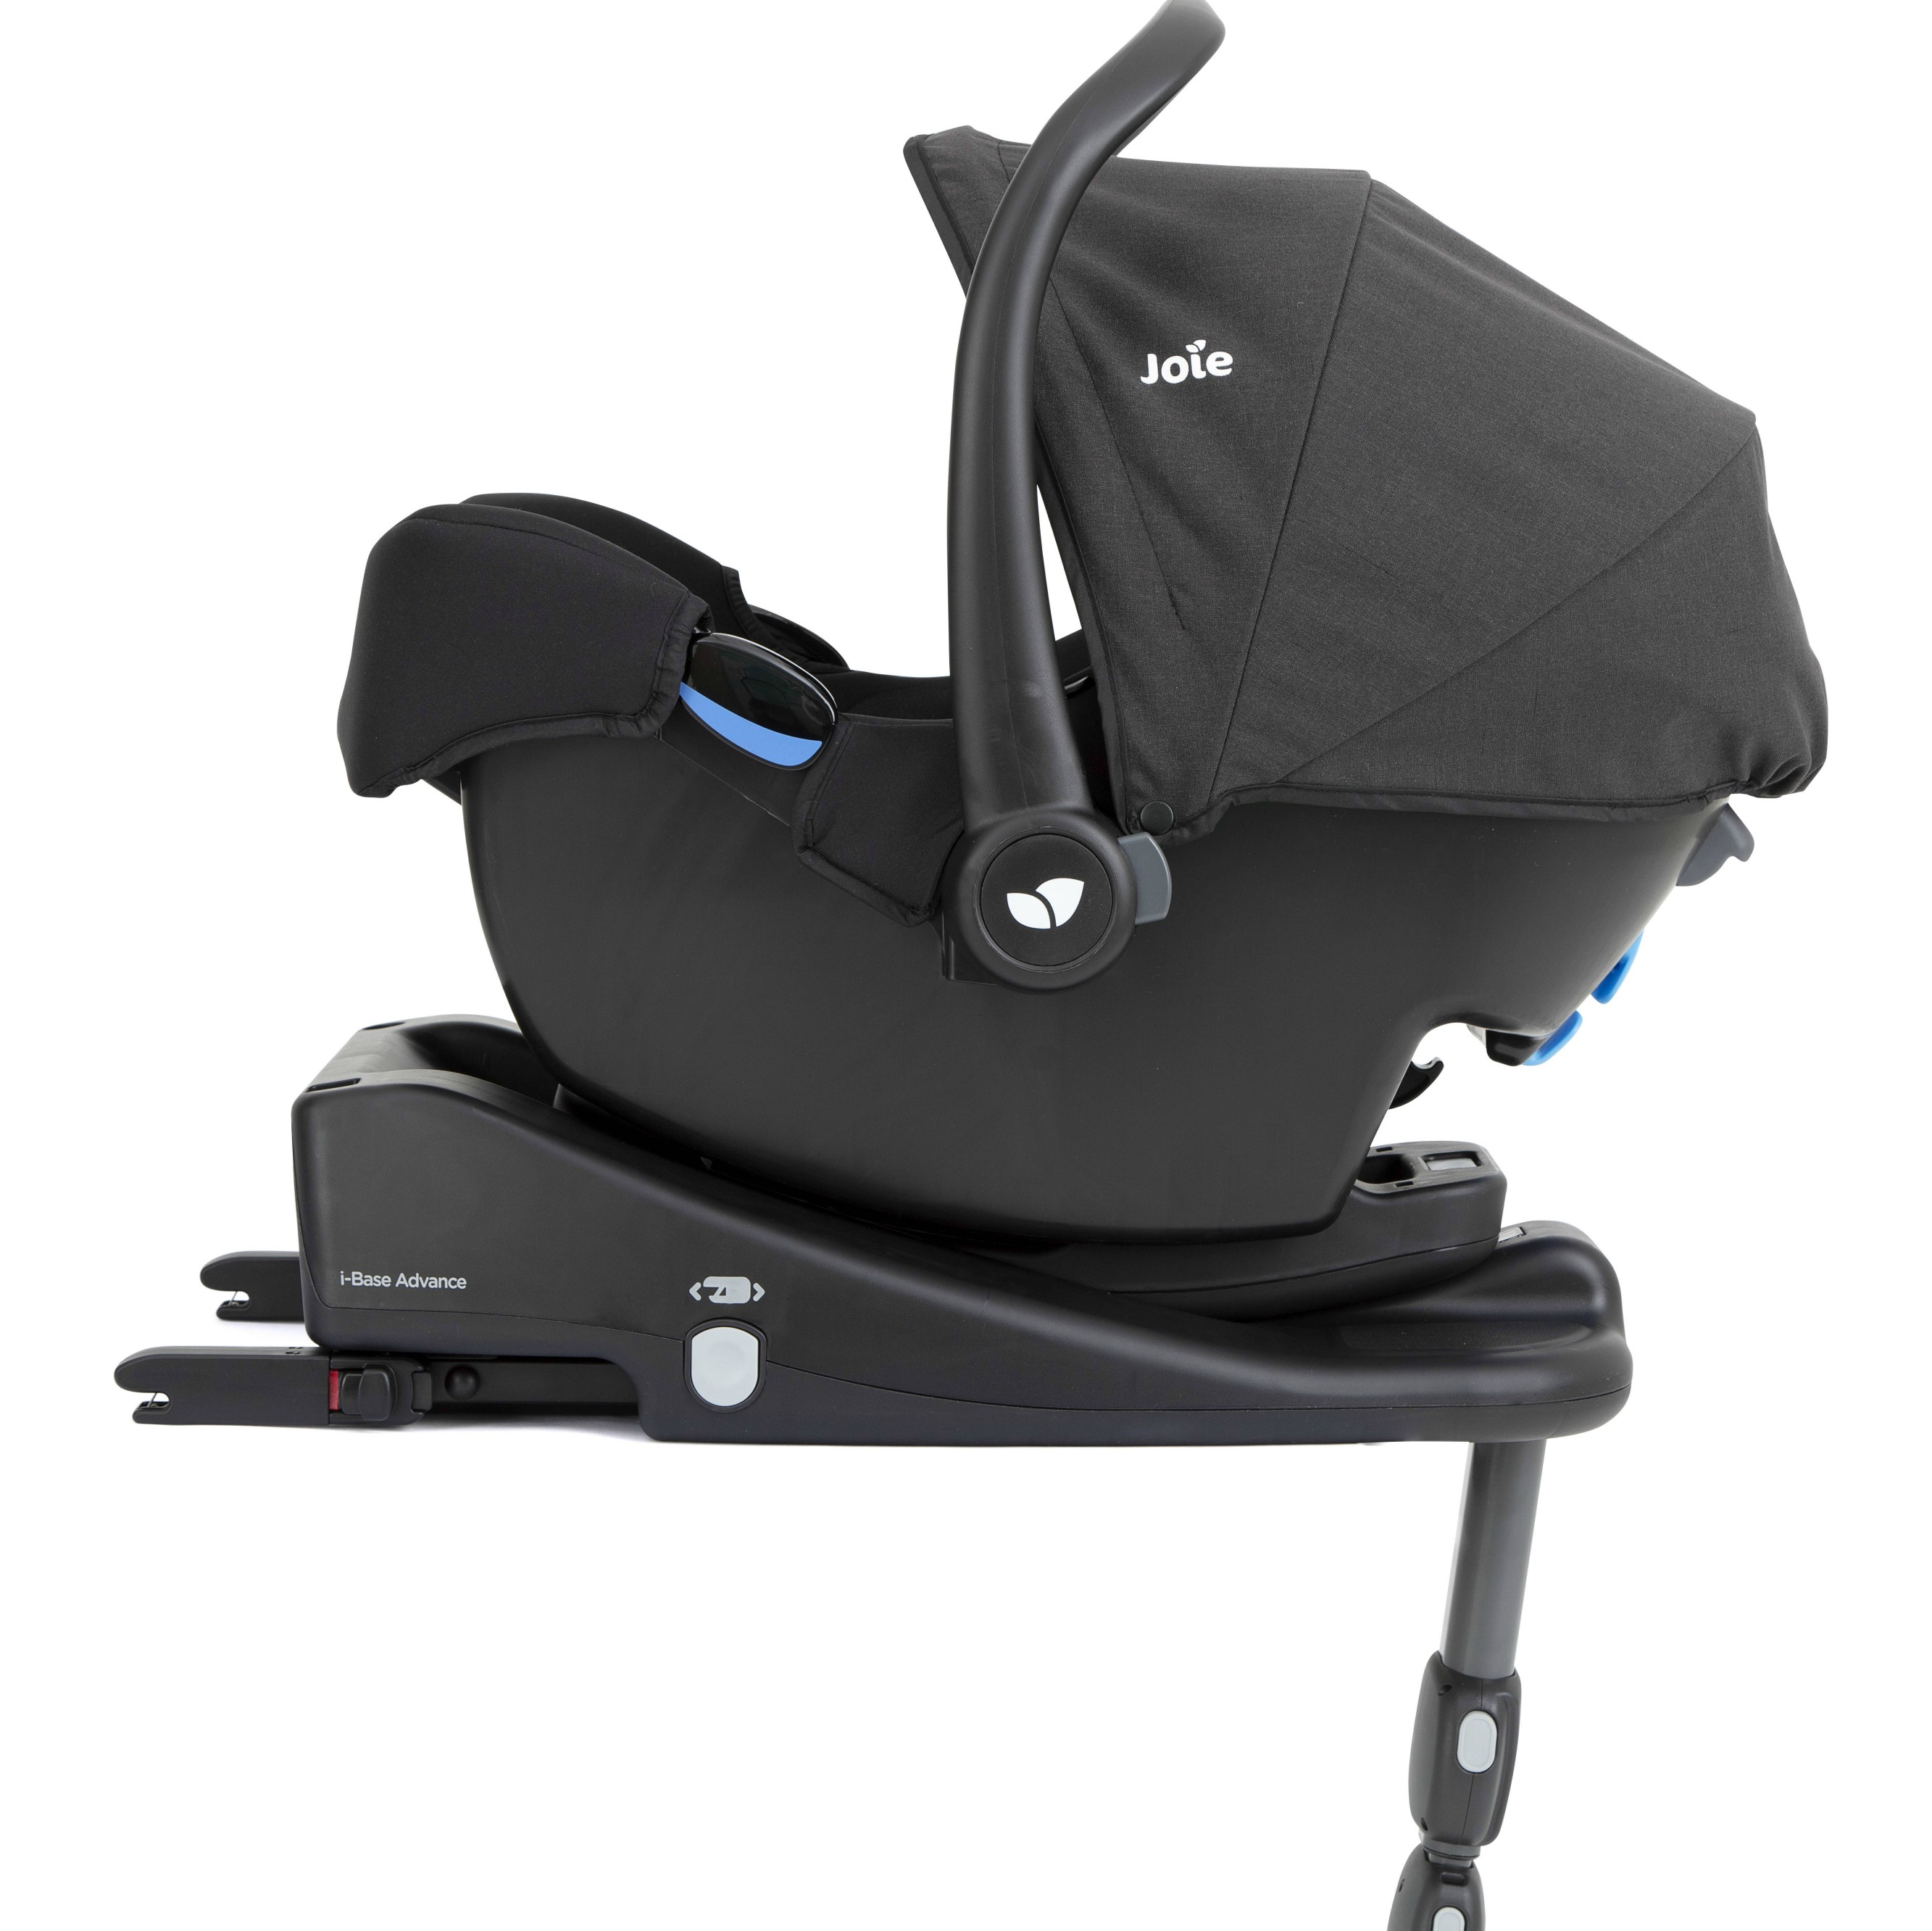 Joie Isofix Base Uk Joie I Size I Snug Car Seat Coal Isofix I Base From Birth To 13kgs